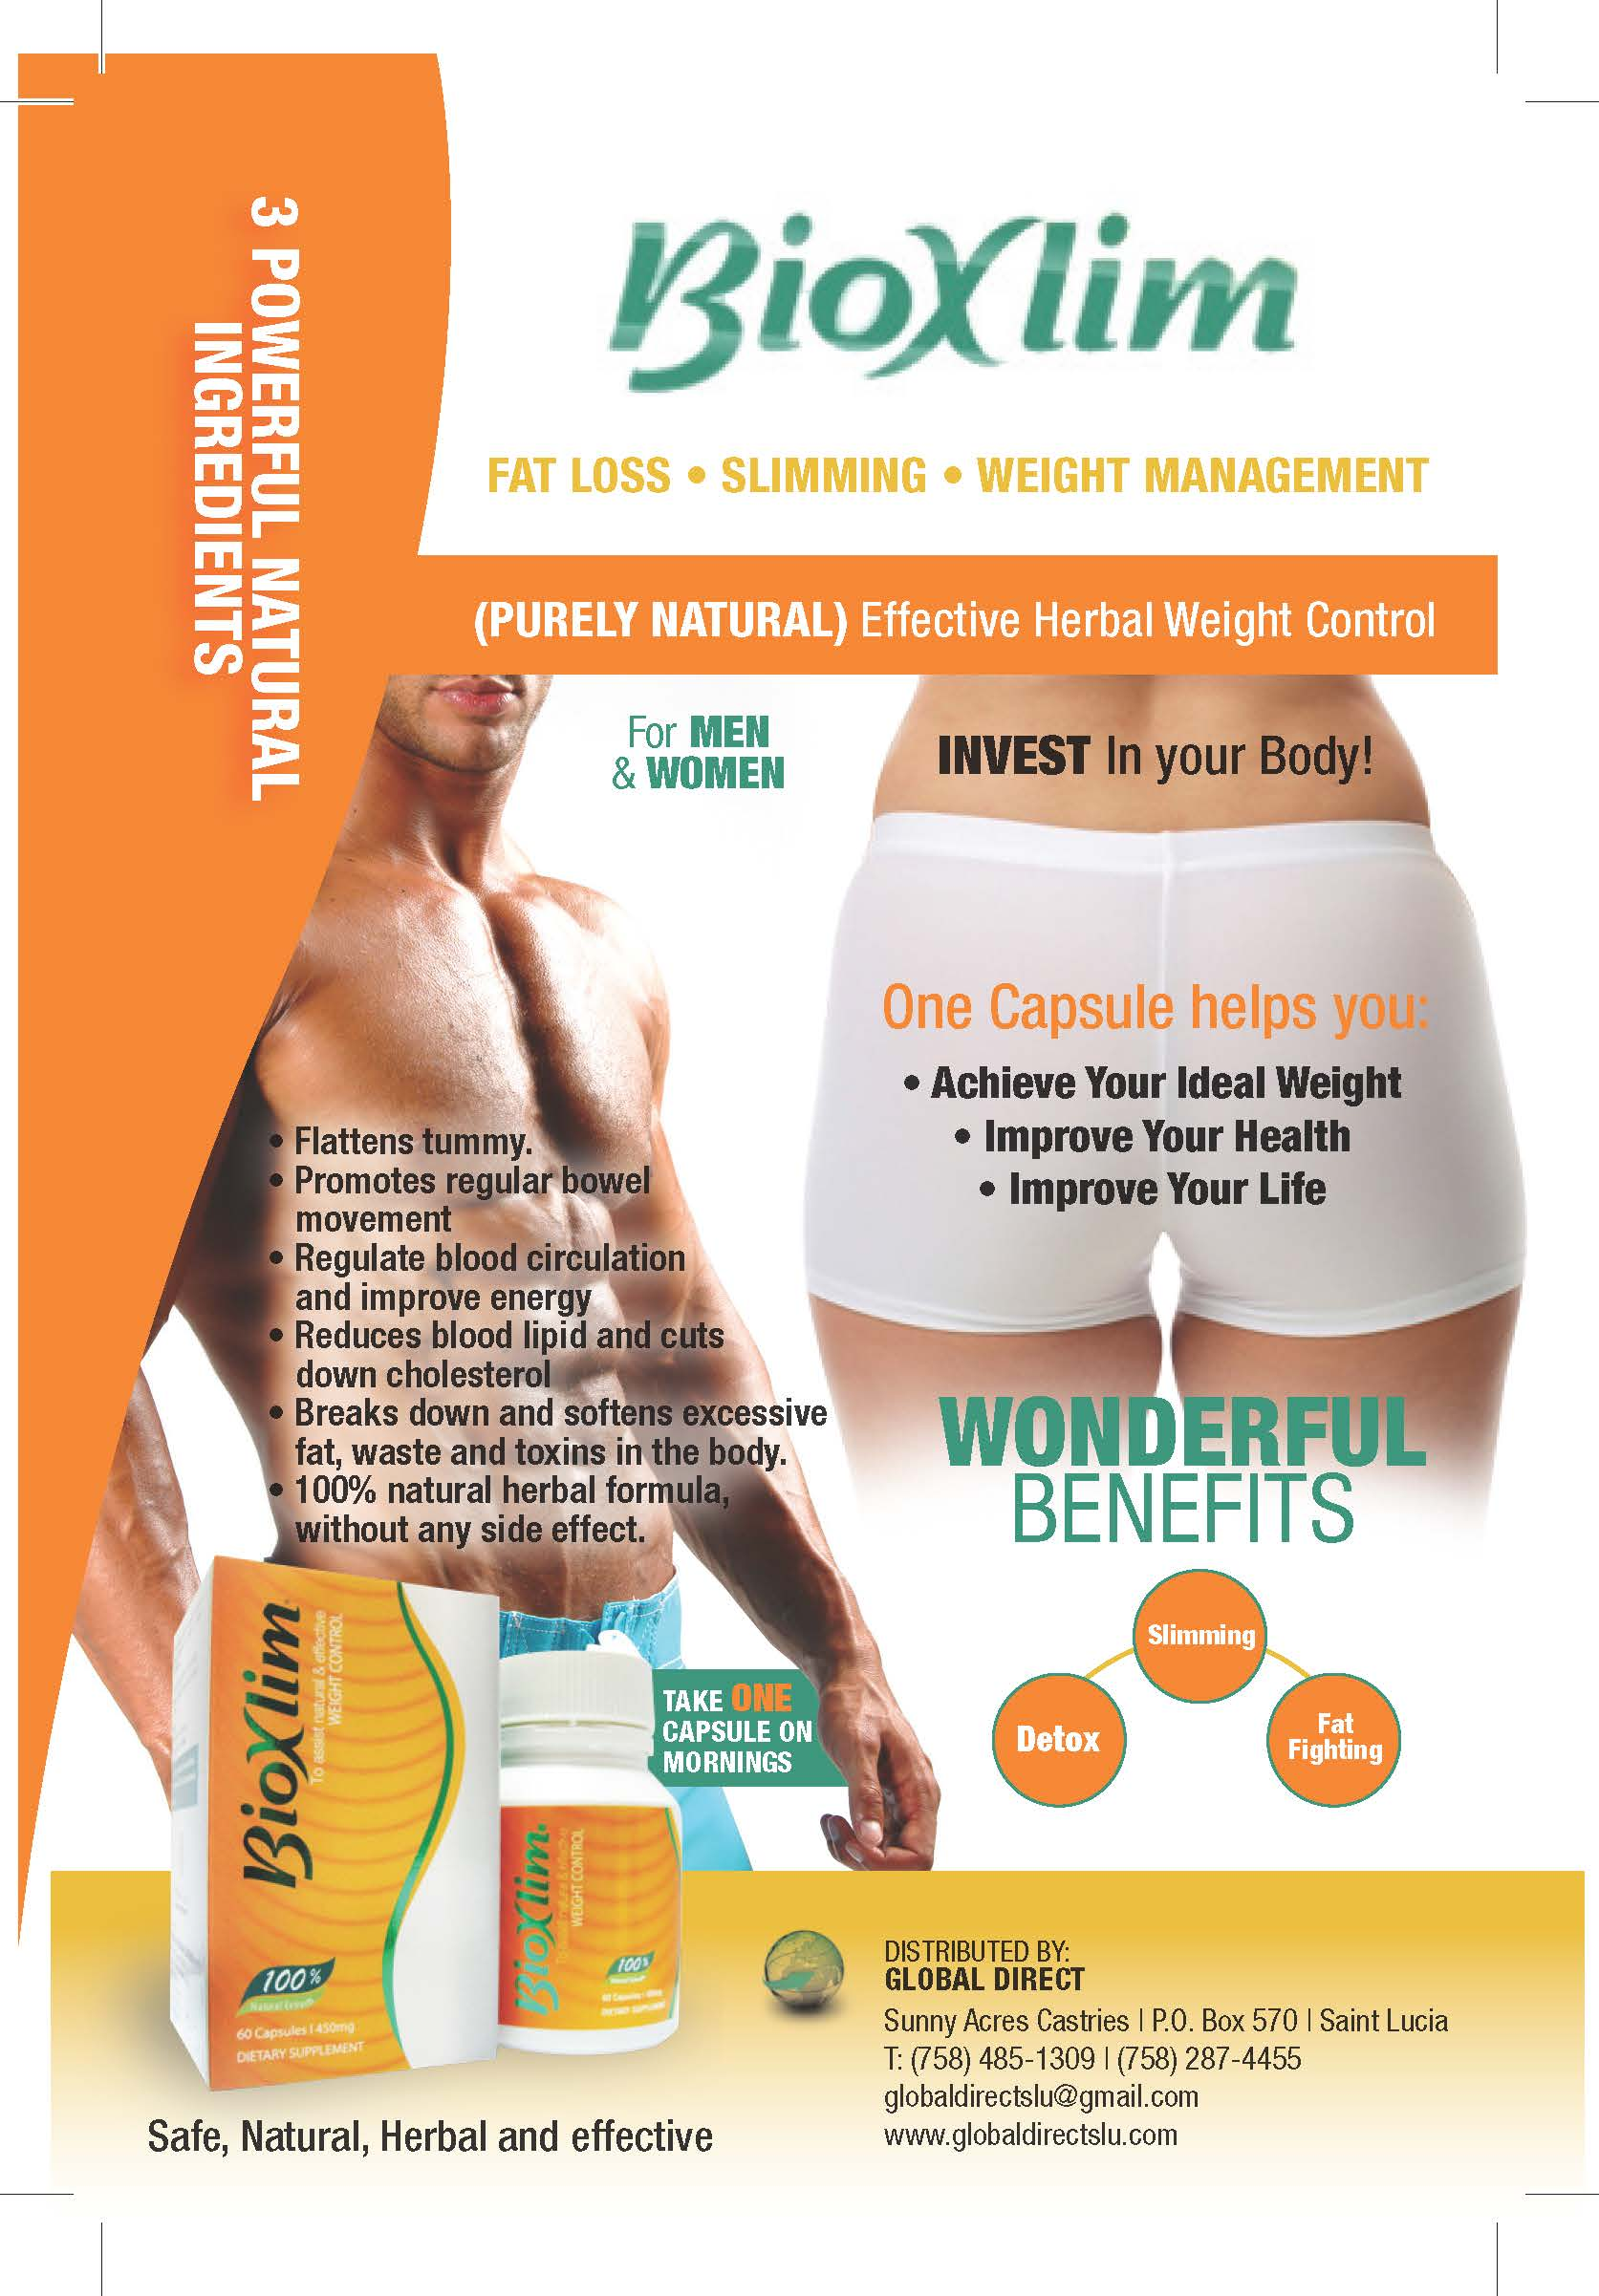 BioXlim Weight Loss (60 Capsules) | Global Direct St. Lucia